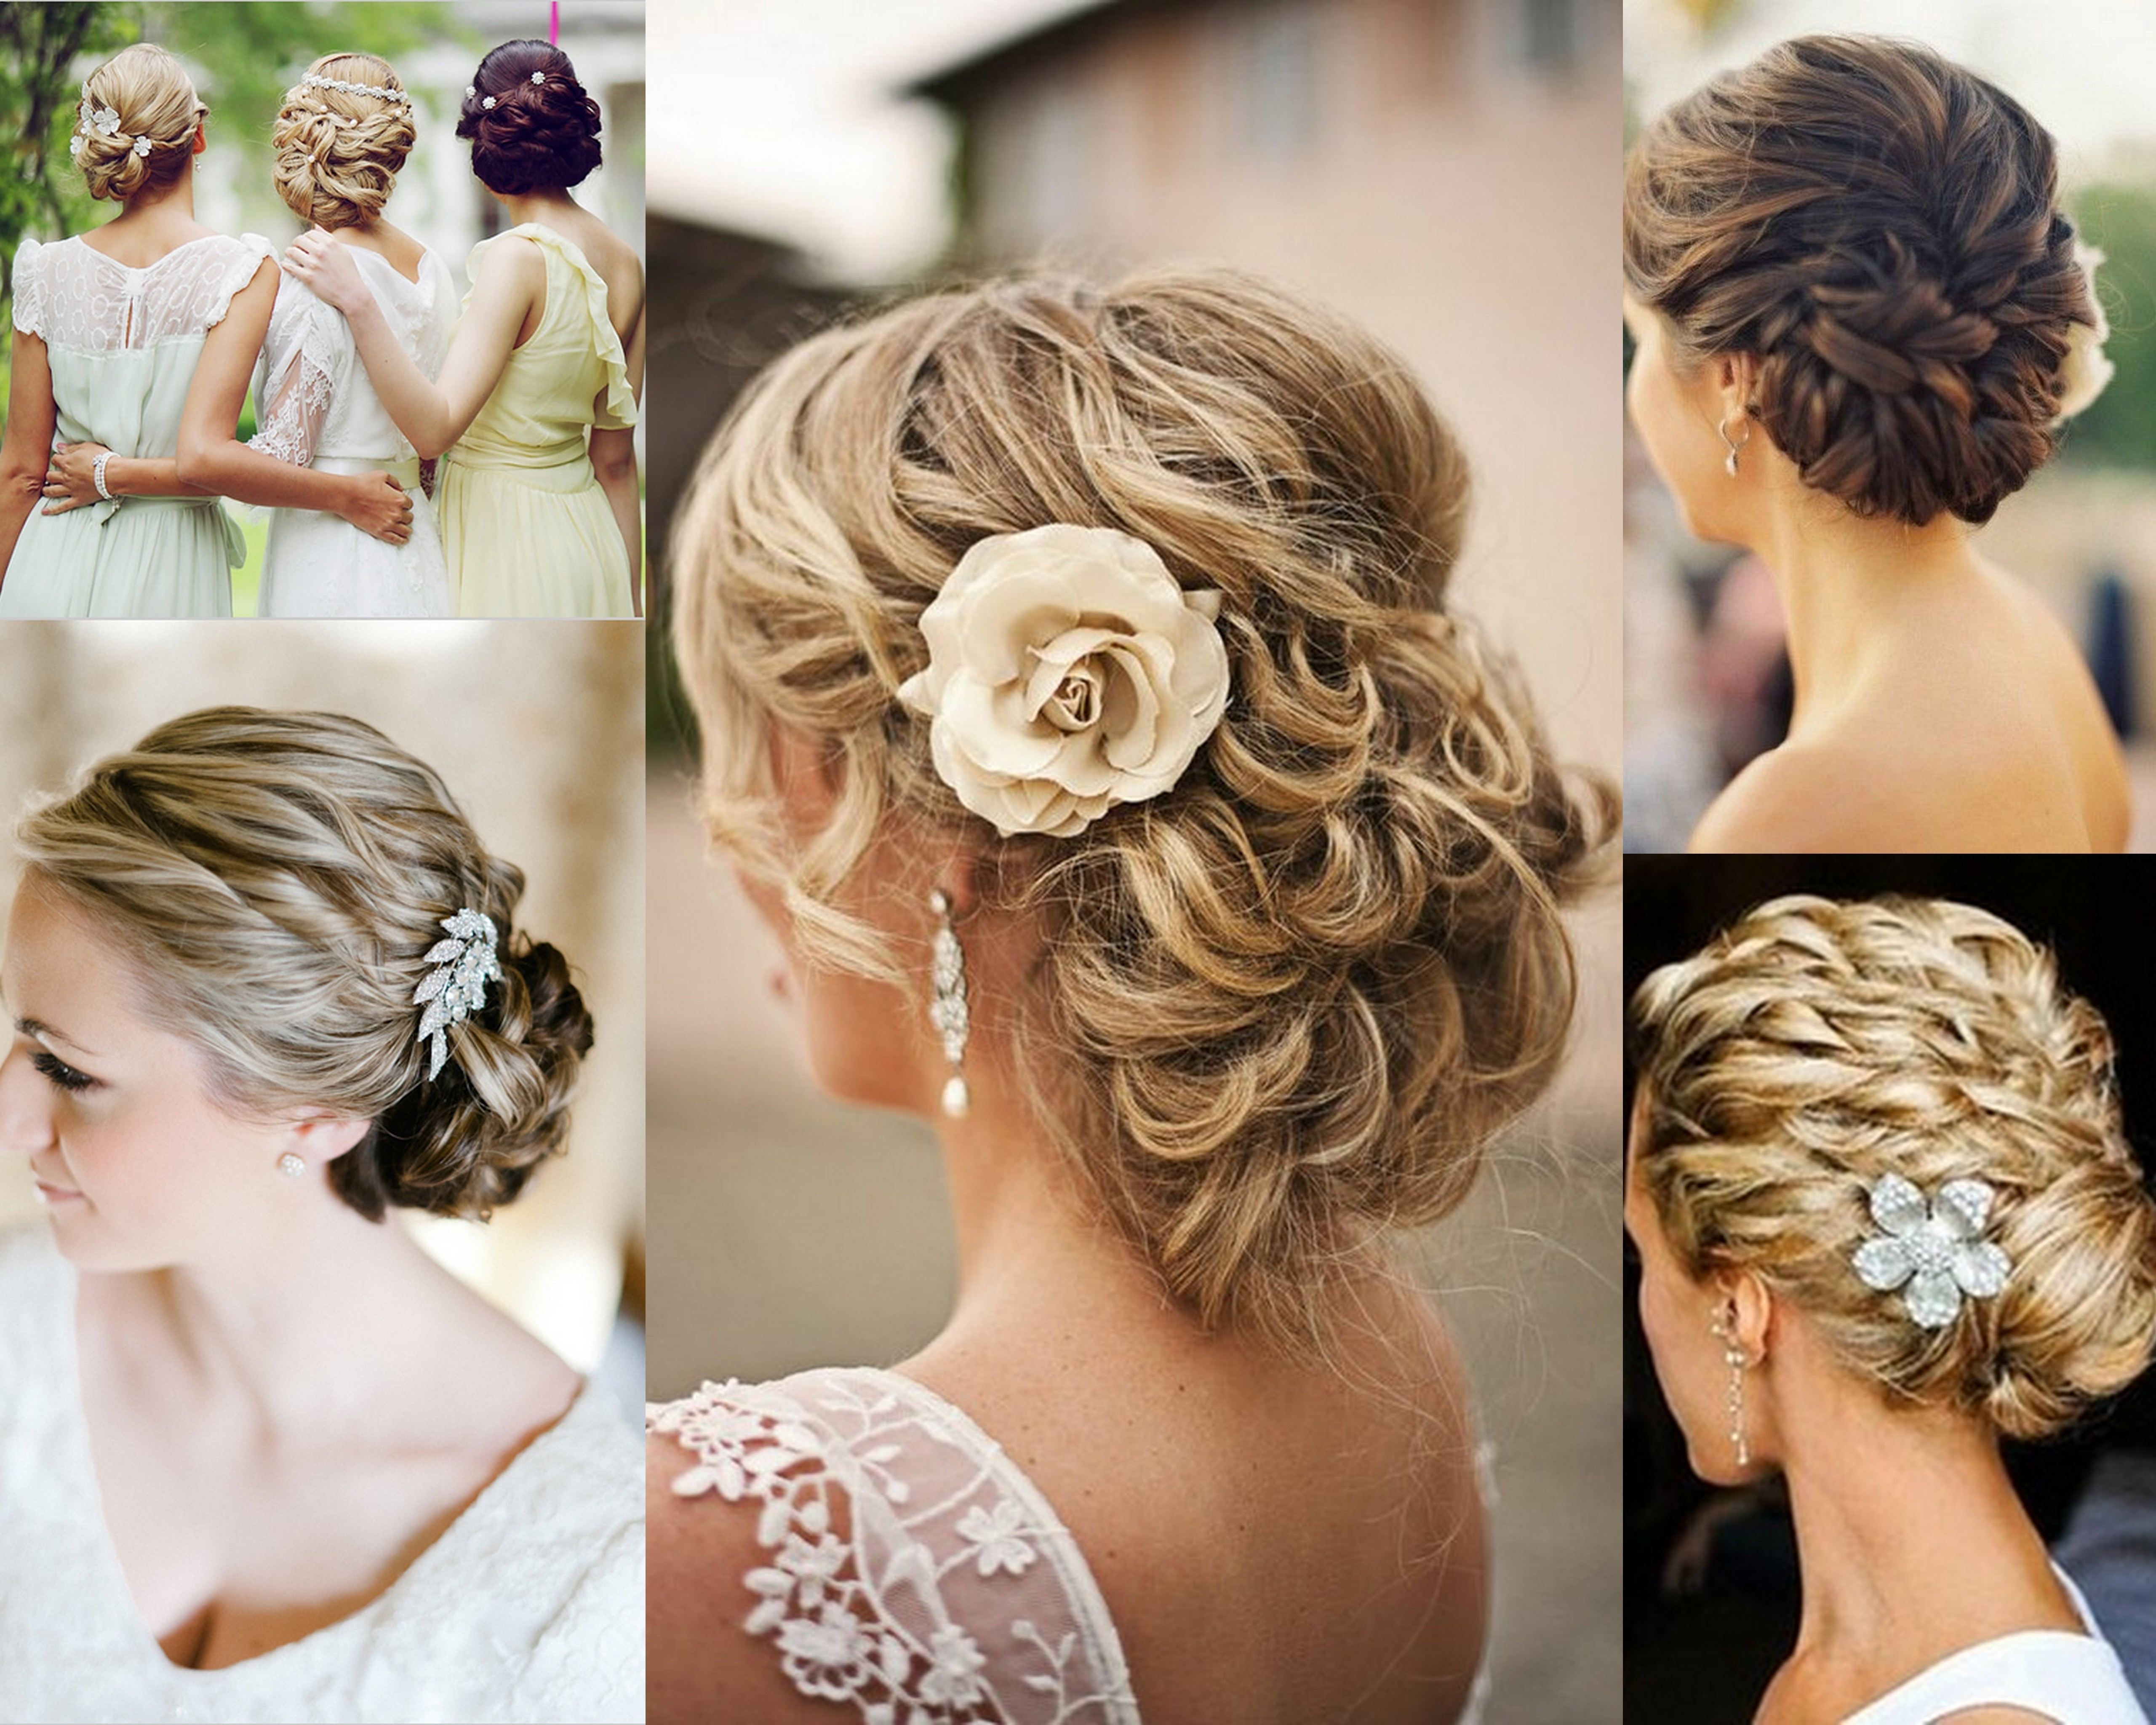 Wedding Hair Updos Yoohair Elegant Updo | Medium Hair Styles Ideas Inside Wedding Hair Updo Hairstyles (View 13 of 15)